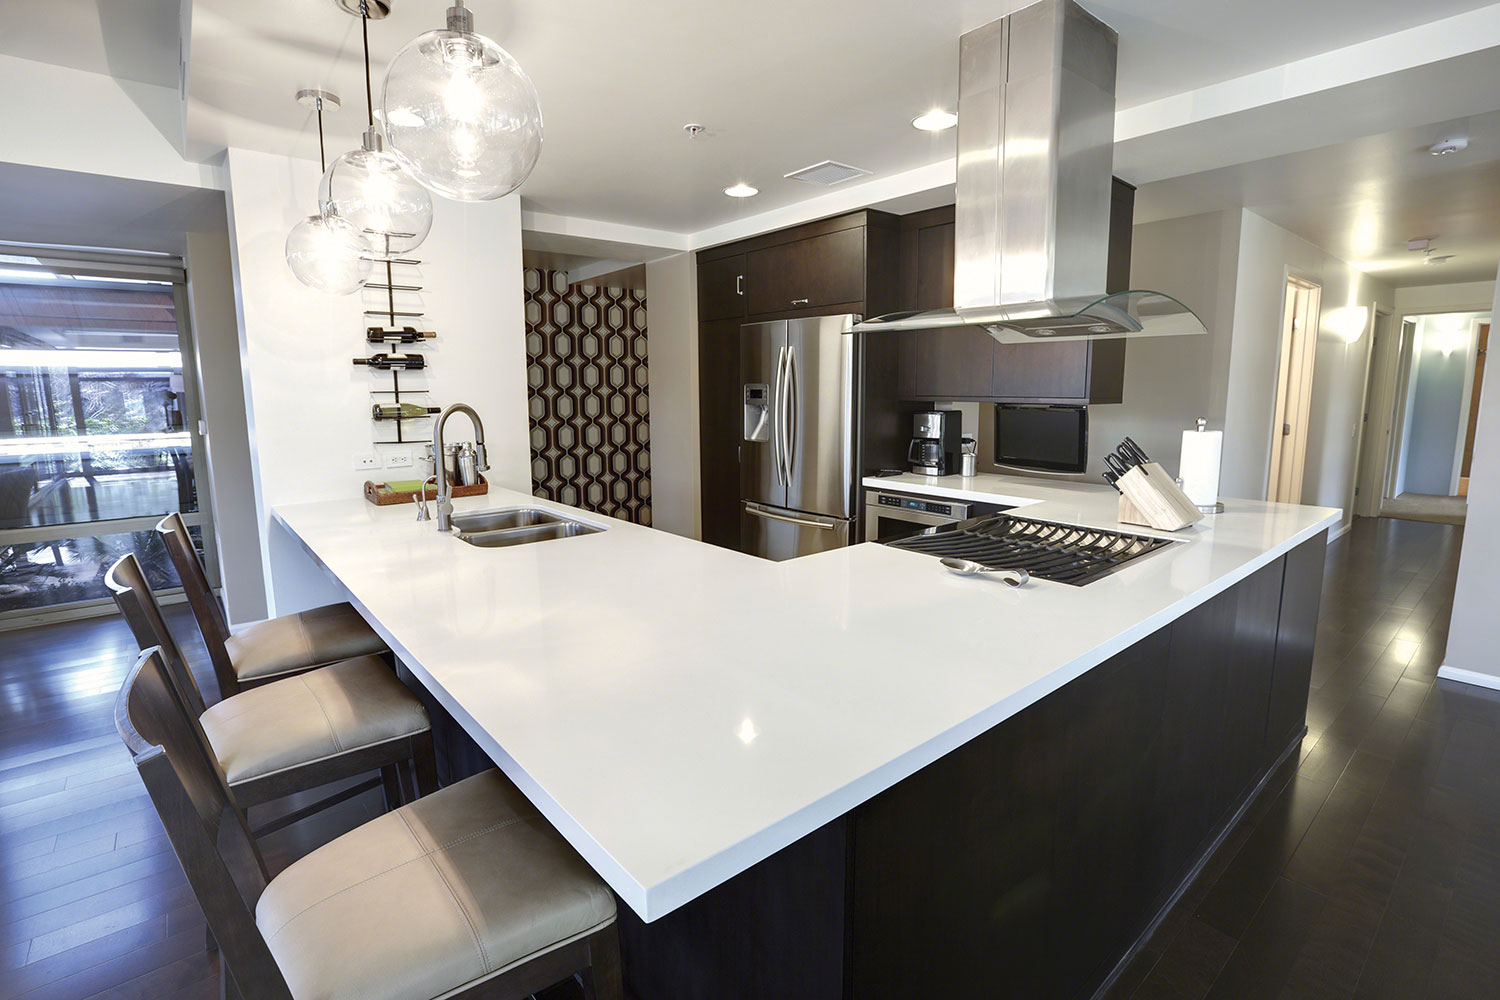 2015 Hot Kitchen Trends Part 1 Cabinets amp Countertops : imageaxdpicture2f20152f012fKitchen0068 from www.msistone.com size 1500 x 1000 jpeg 1303kB